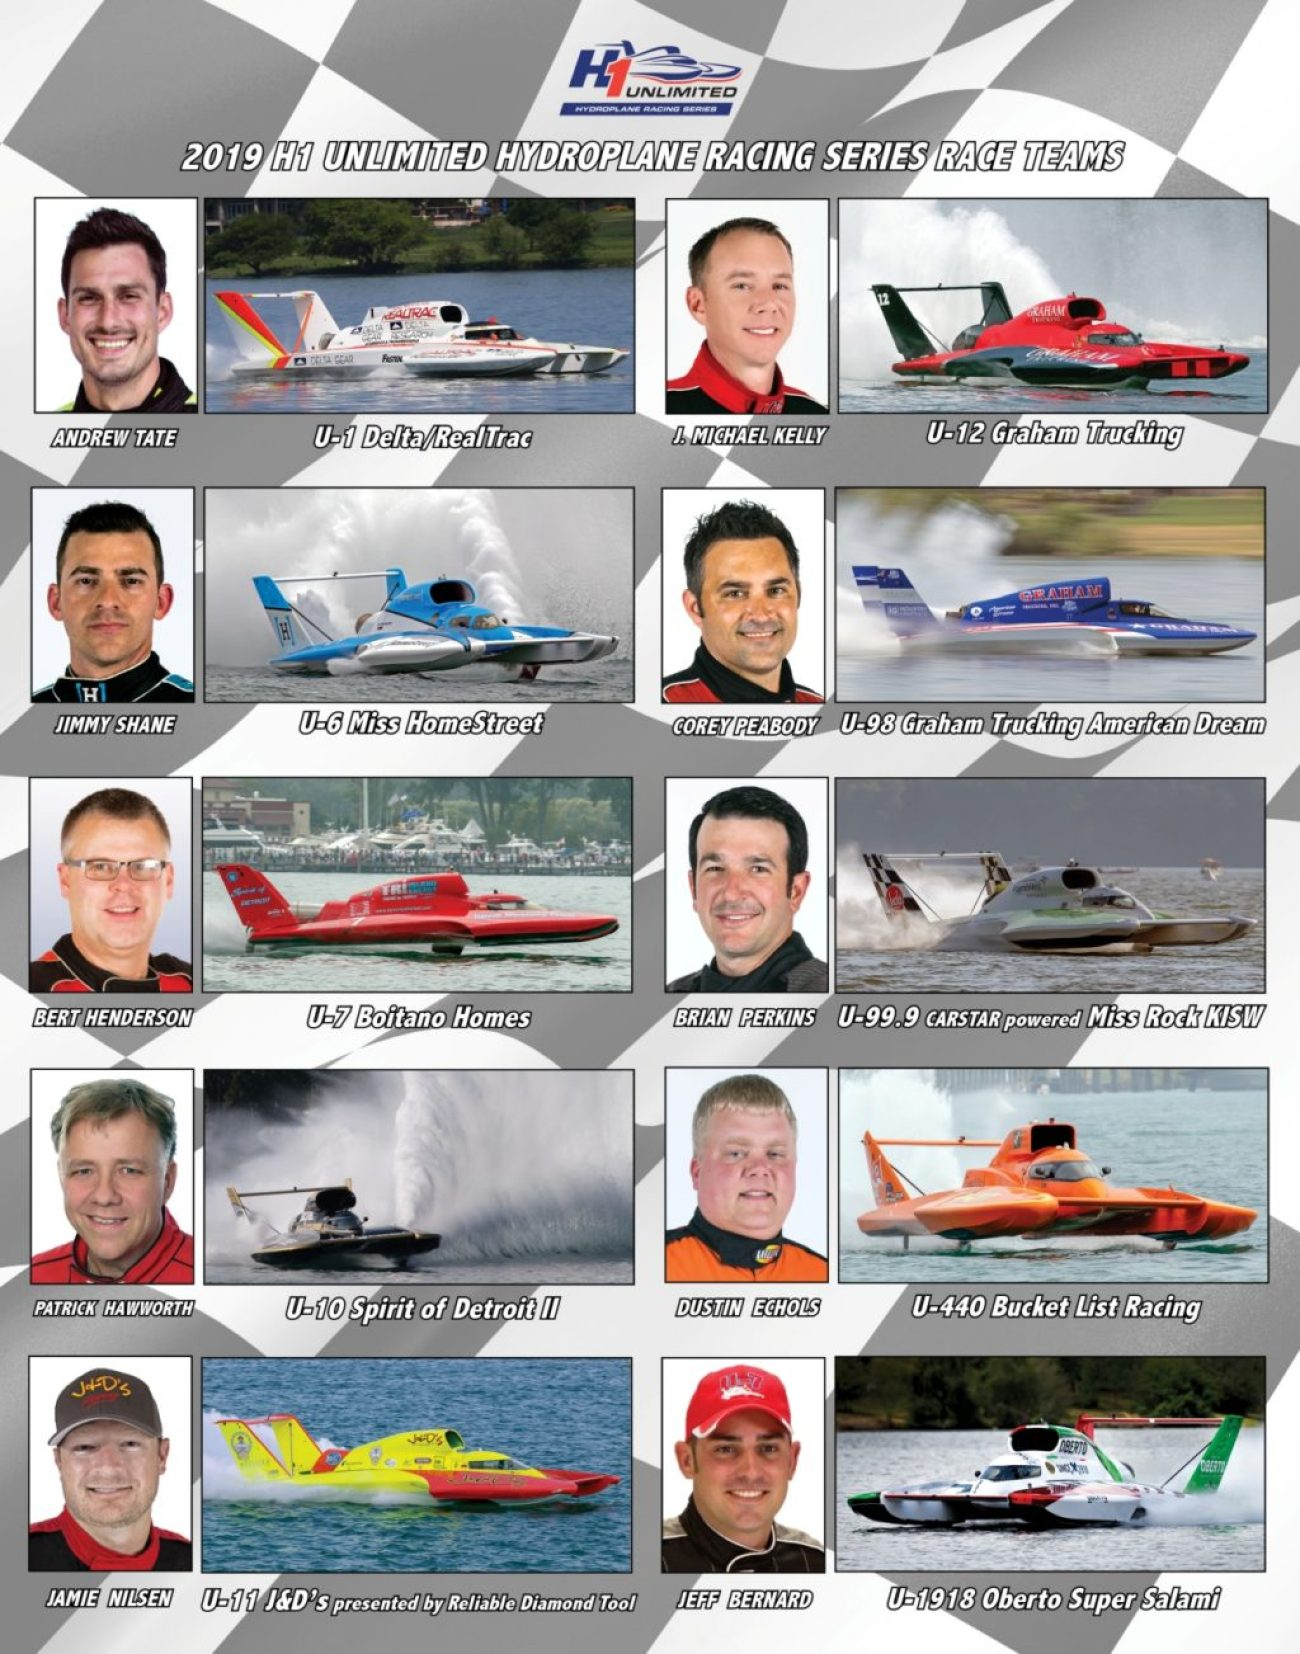 H1 Unlimited Hydroplanes Head To Lake Washington – Powerboat